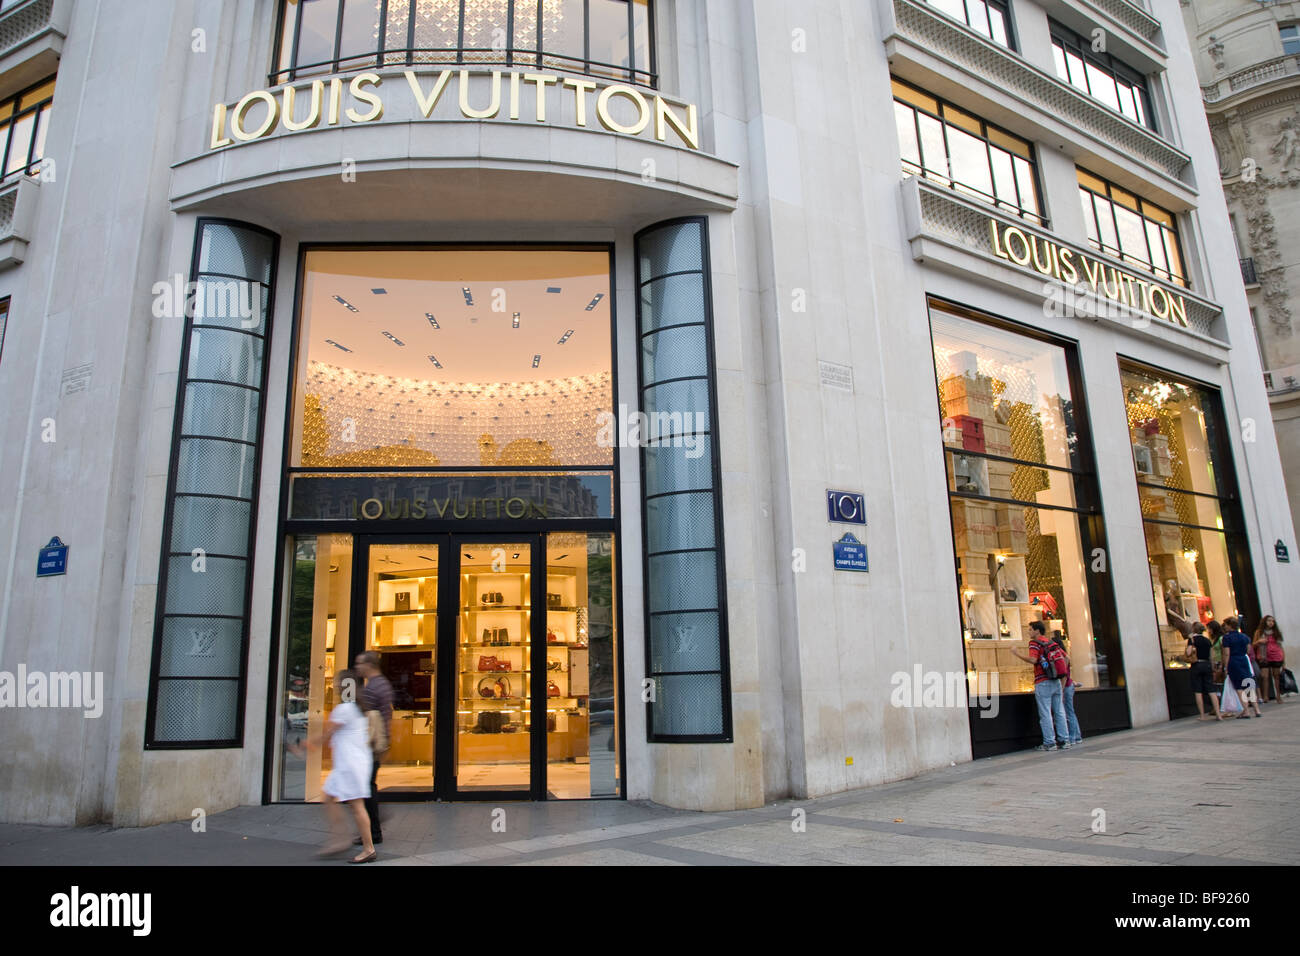 Louis vuitton shop champs elysees paris france stock photo royalty free i - Paris shopping boutiques ...